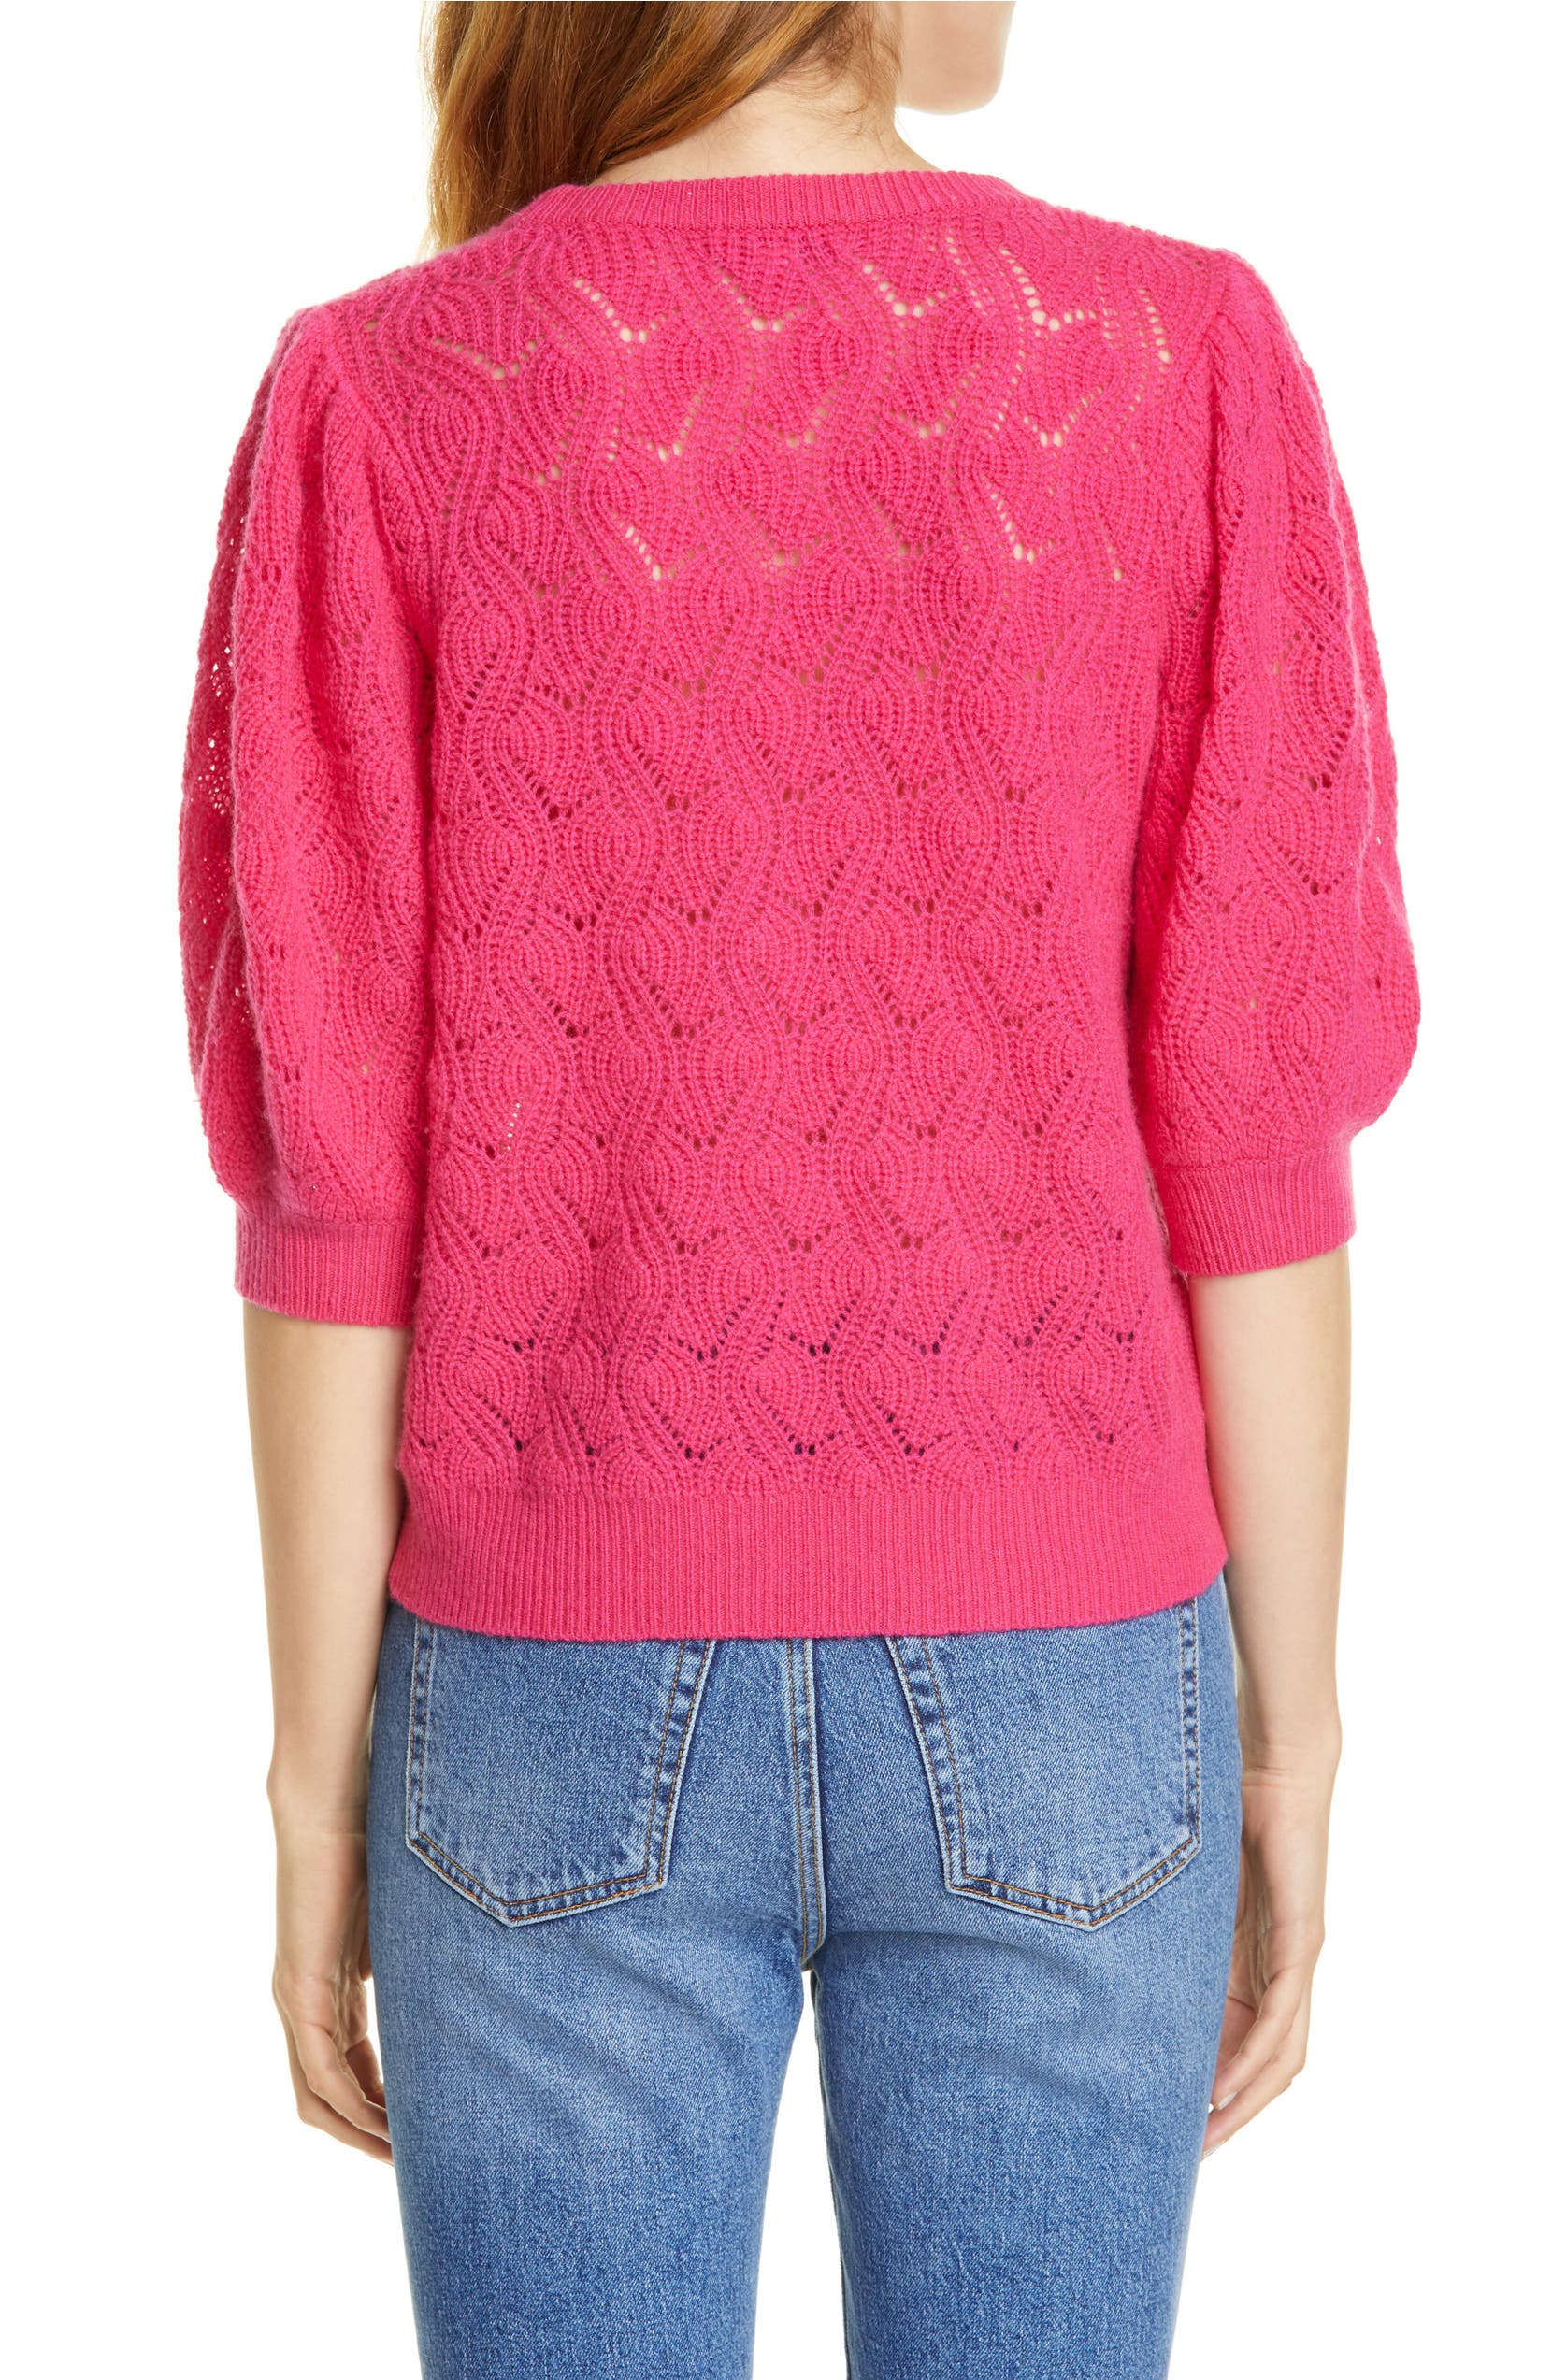 Joie Jenise Puff Sleeve Wool & Cashmere Sweater | Nordstrom